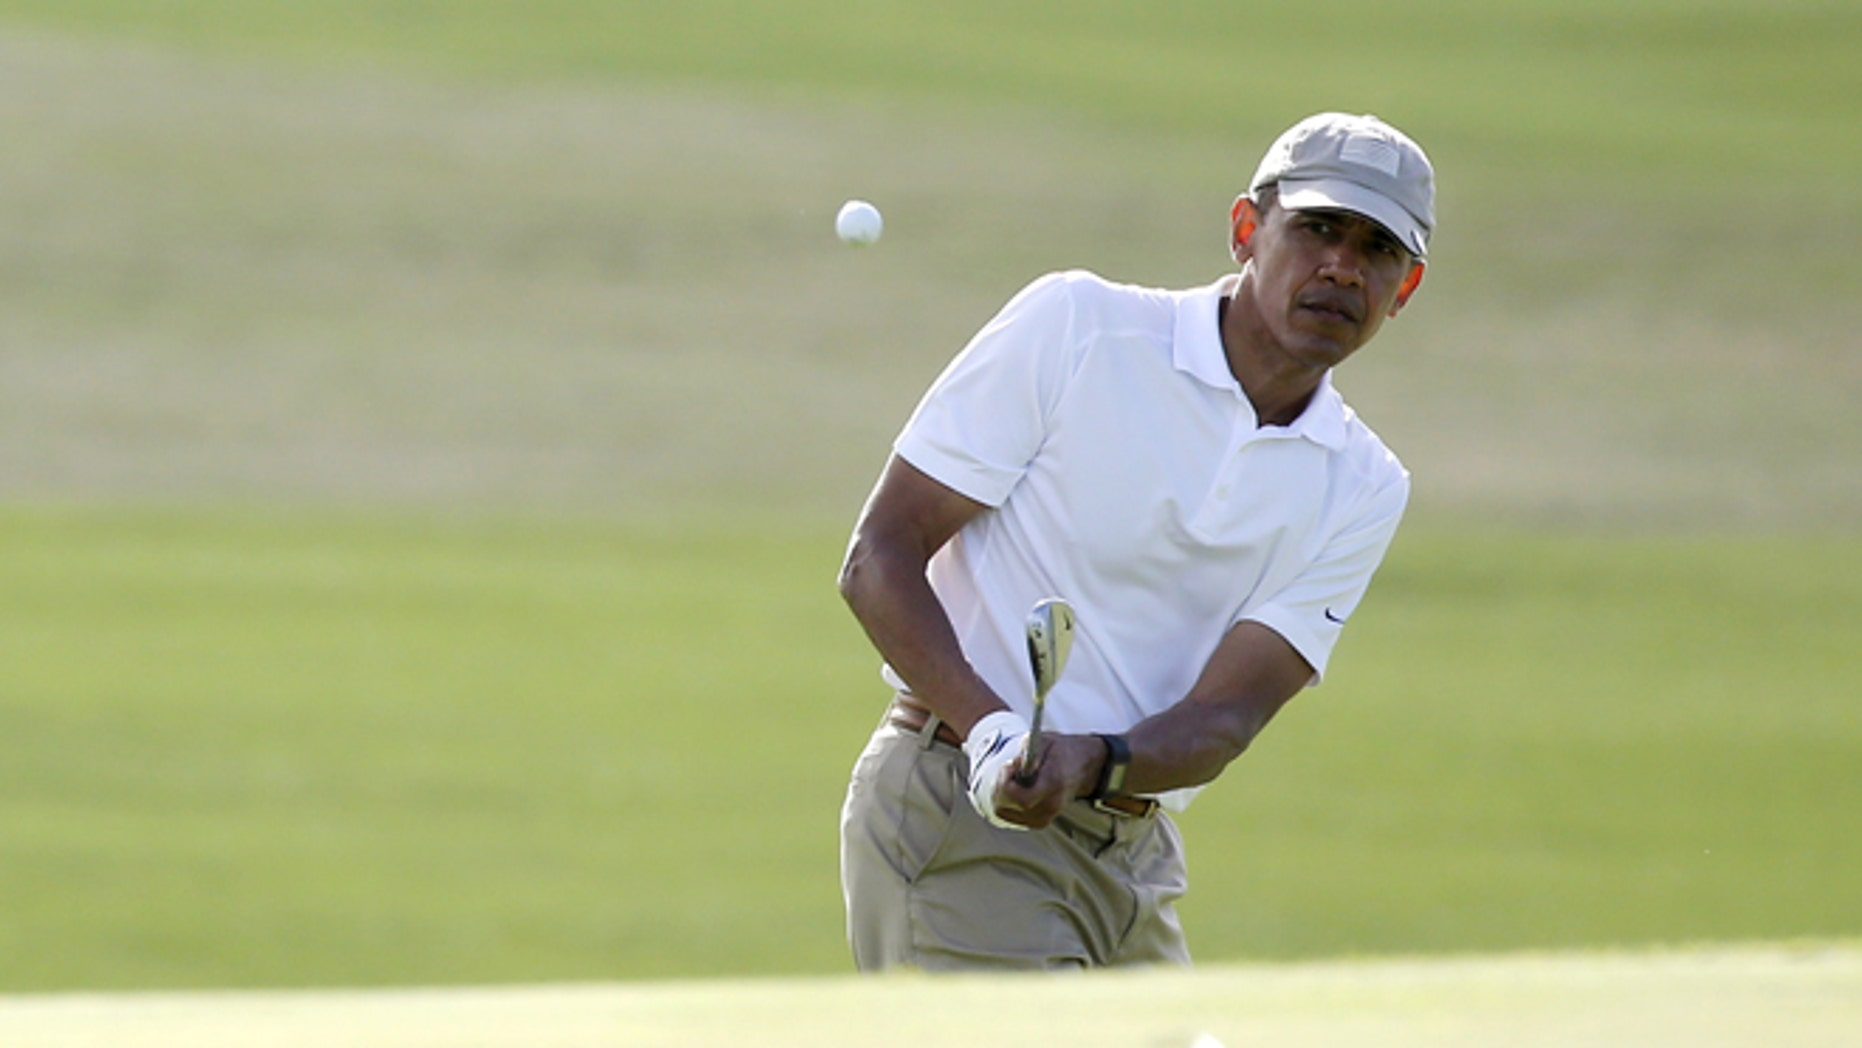 U.S. President Barack Obama plays a shot to the 18th green as he finishes a round of golf with friends at the Mid-Pacific Country Club in Kailua, Hawaii, December 28, 2015. REUTERS/Jonathan Ernst - RTX20CBK